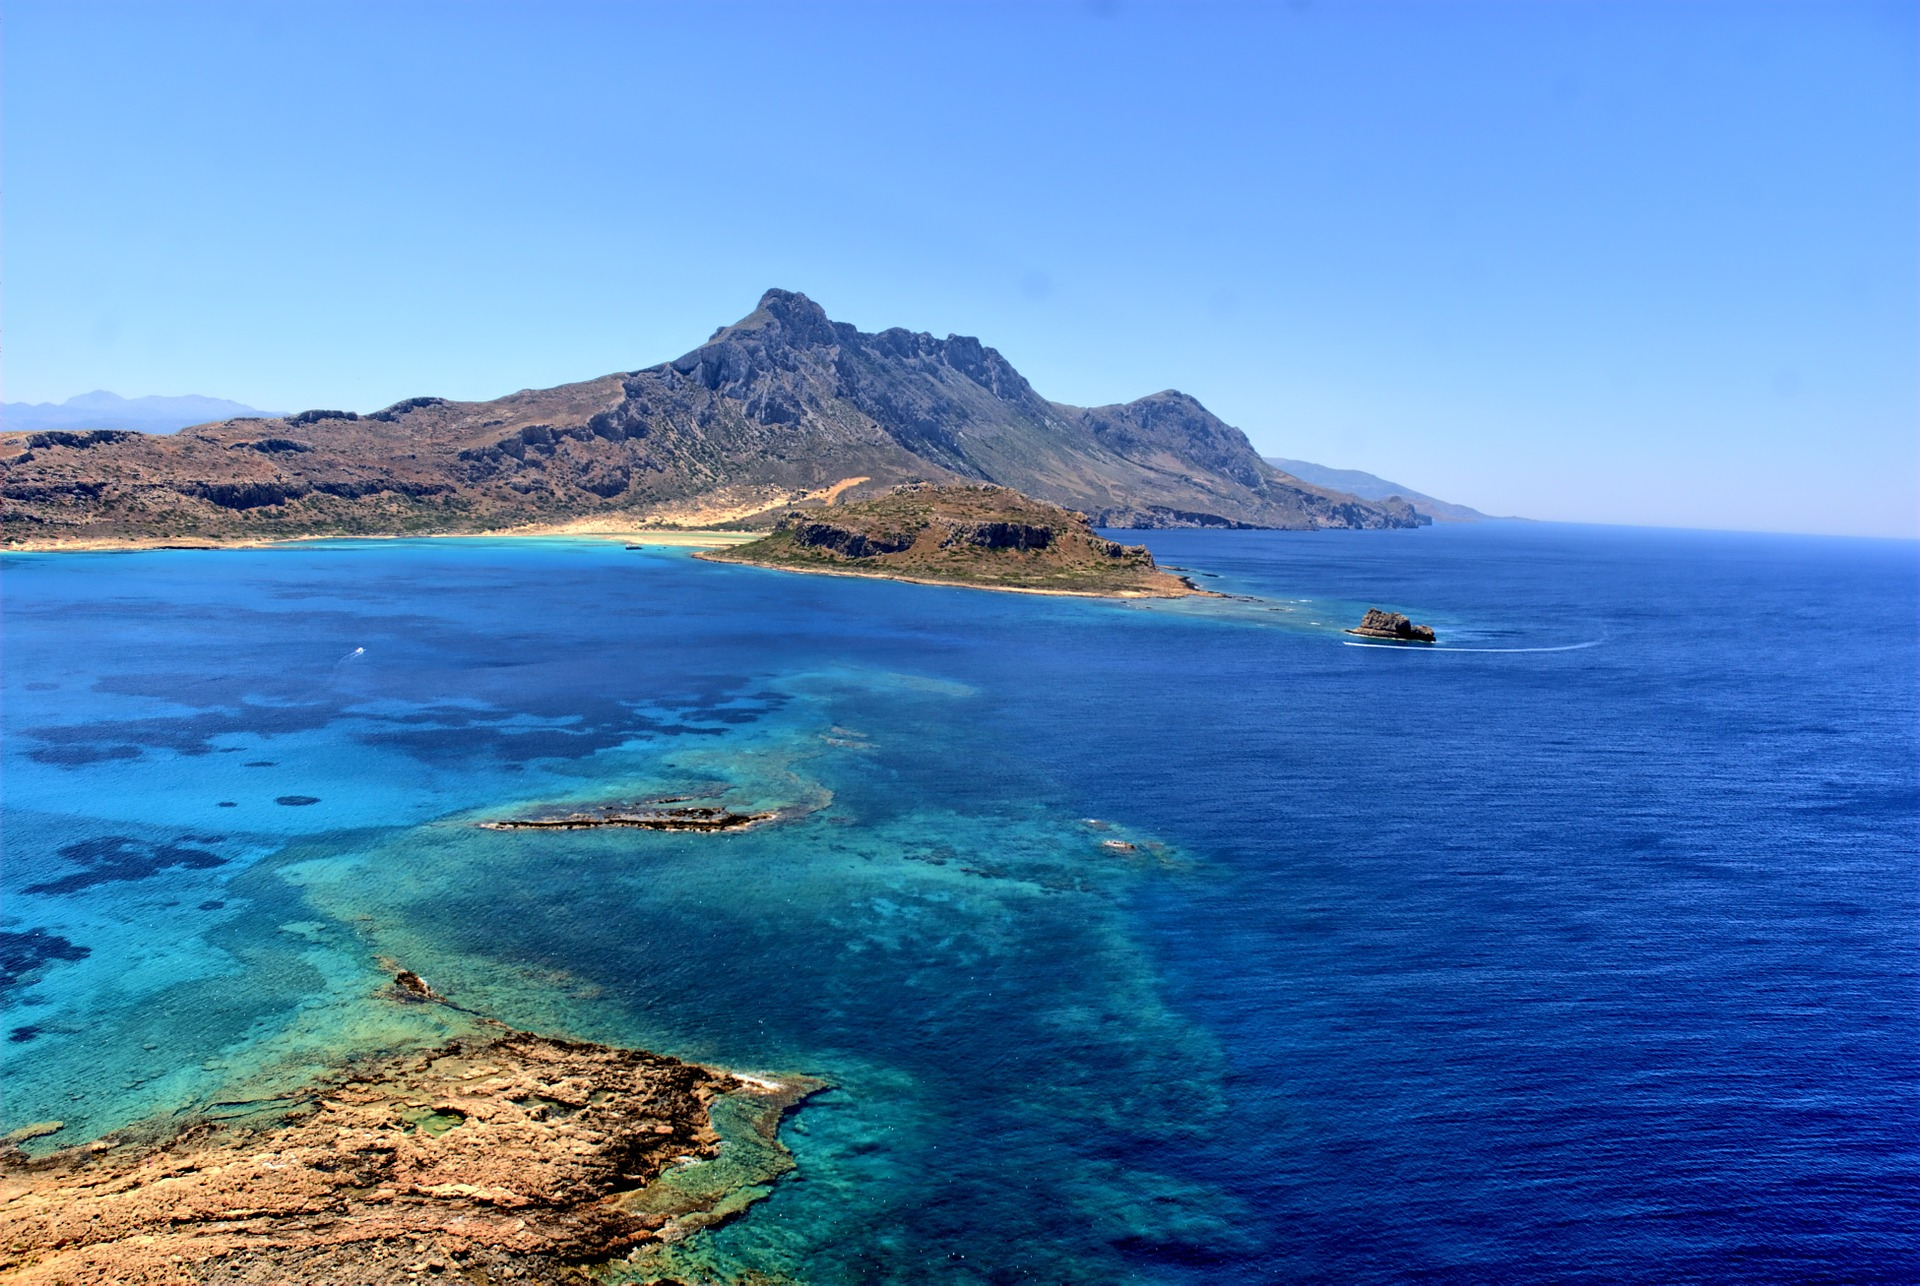 The holiday island of Crete